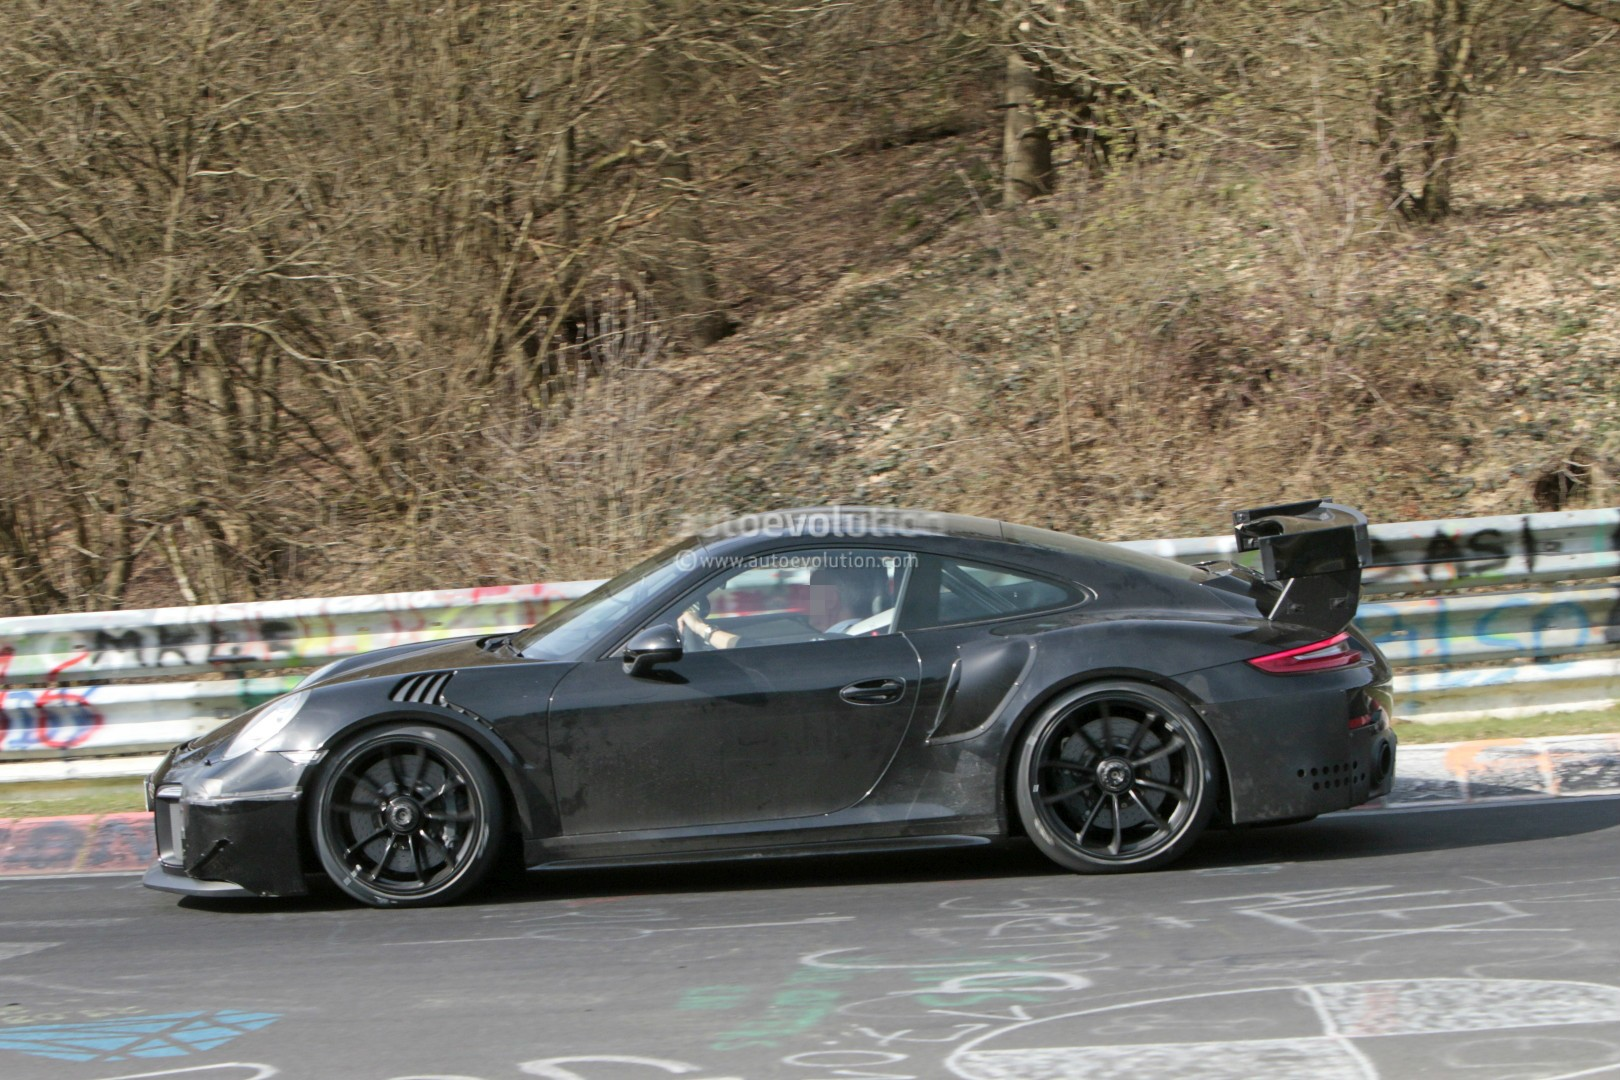 2018 porsche 911 gt2 shows up on nurburgring expect 7 05 lap time autoevolution. Black Bedroom Furniture Sets. Home Design Ideas